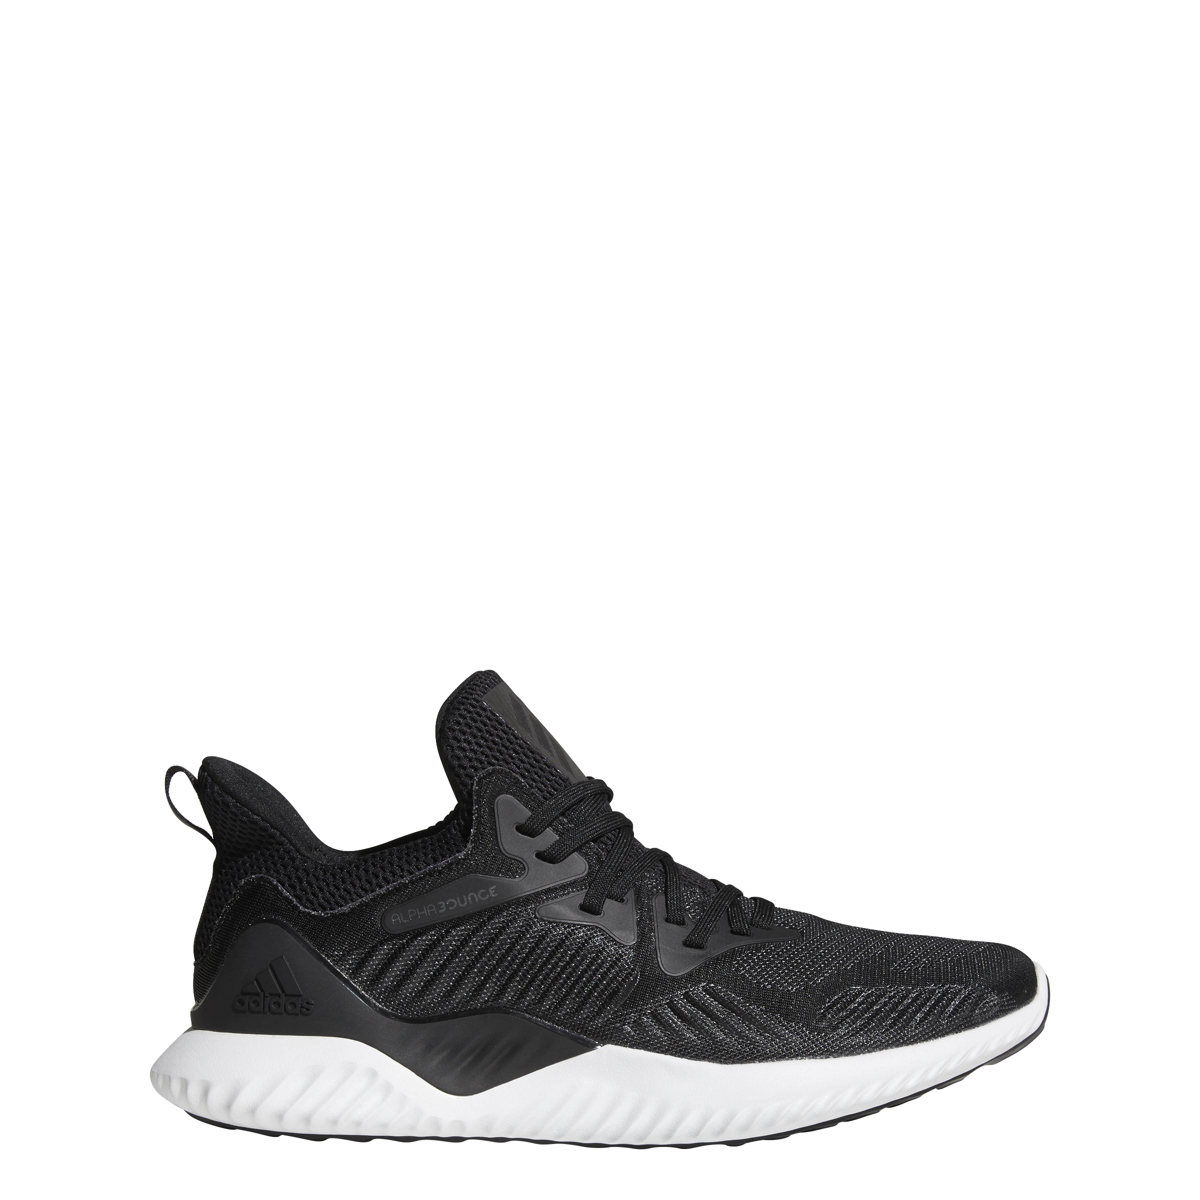 new style 48697 0a5a1 Details about Men s Adidas Alphabounce Beyond Running Shoe Black White